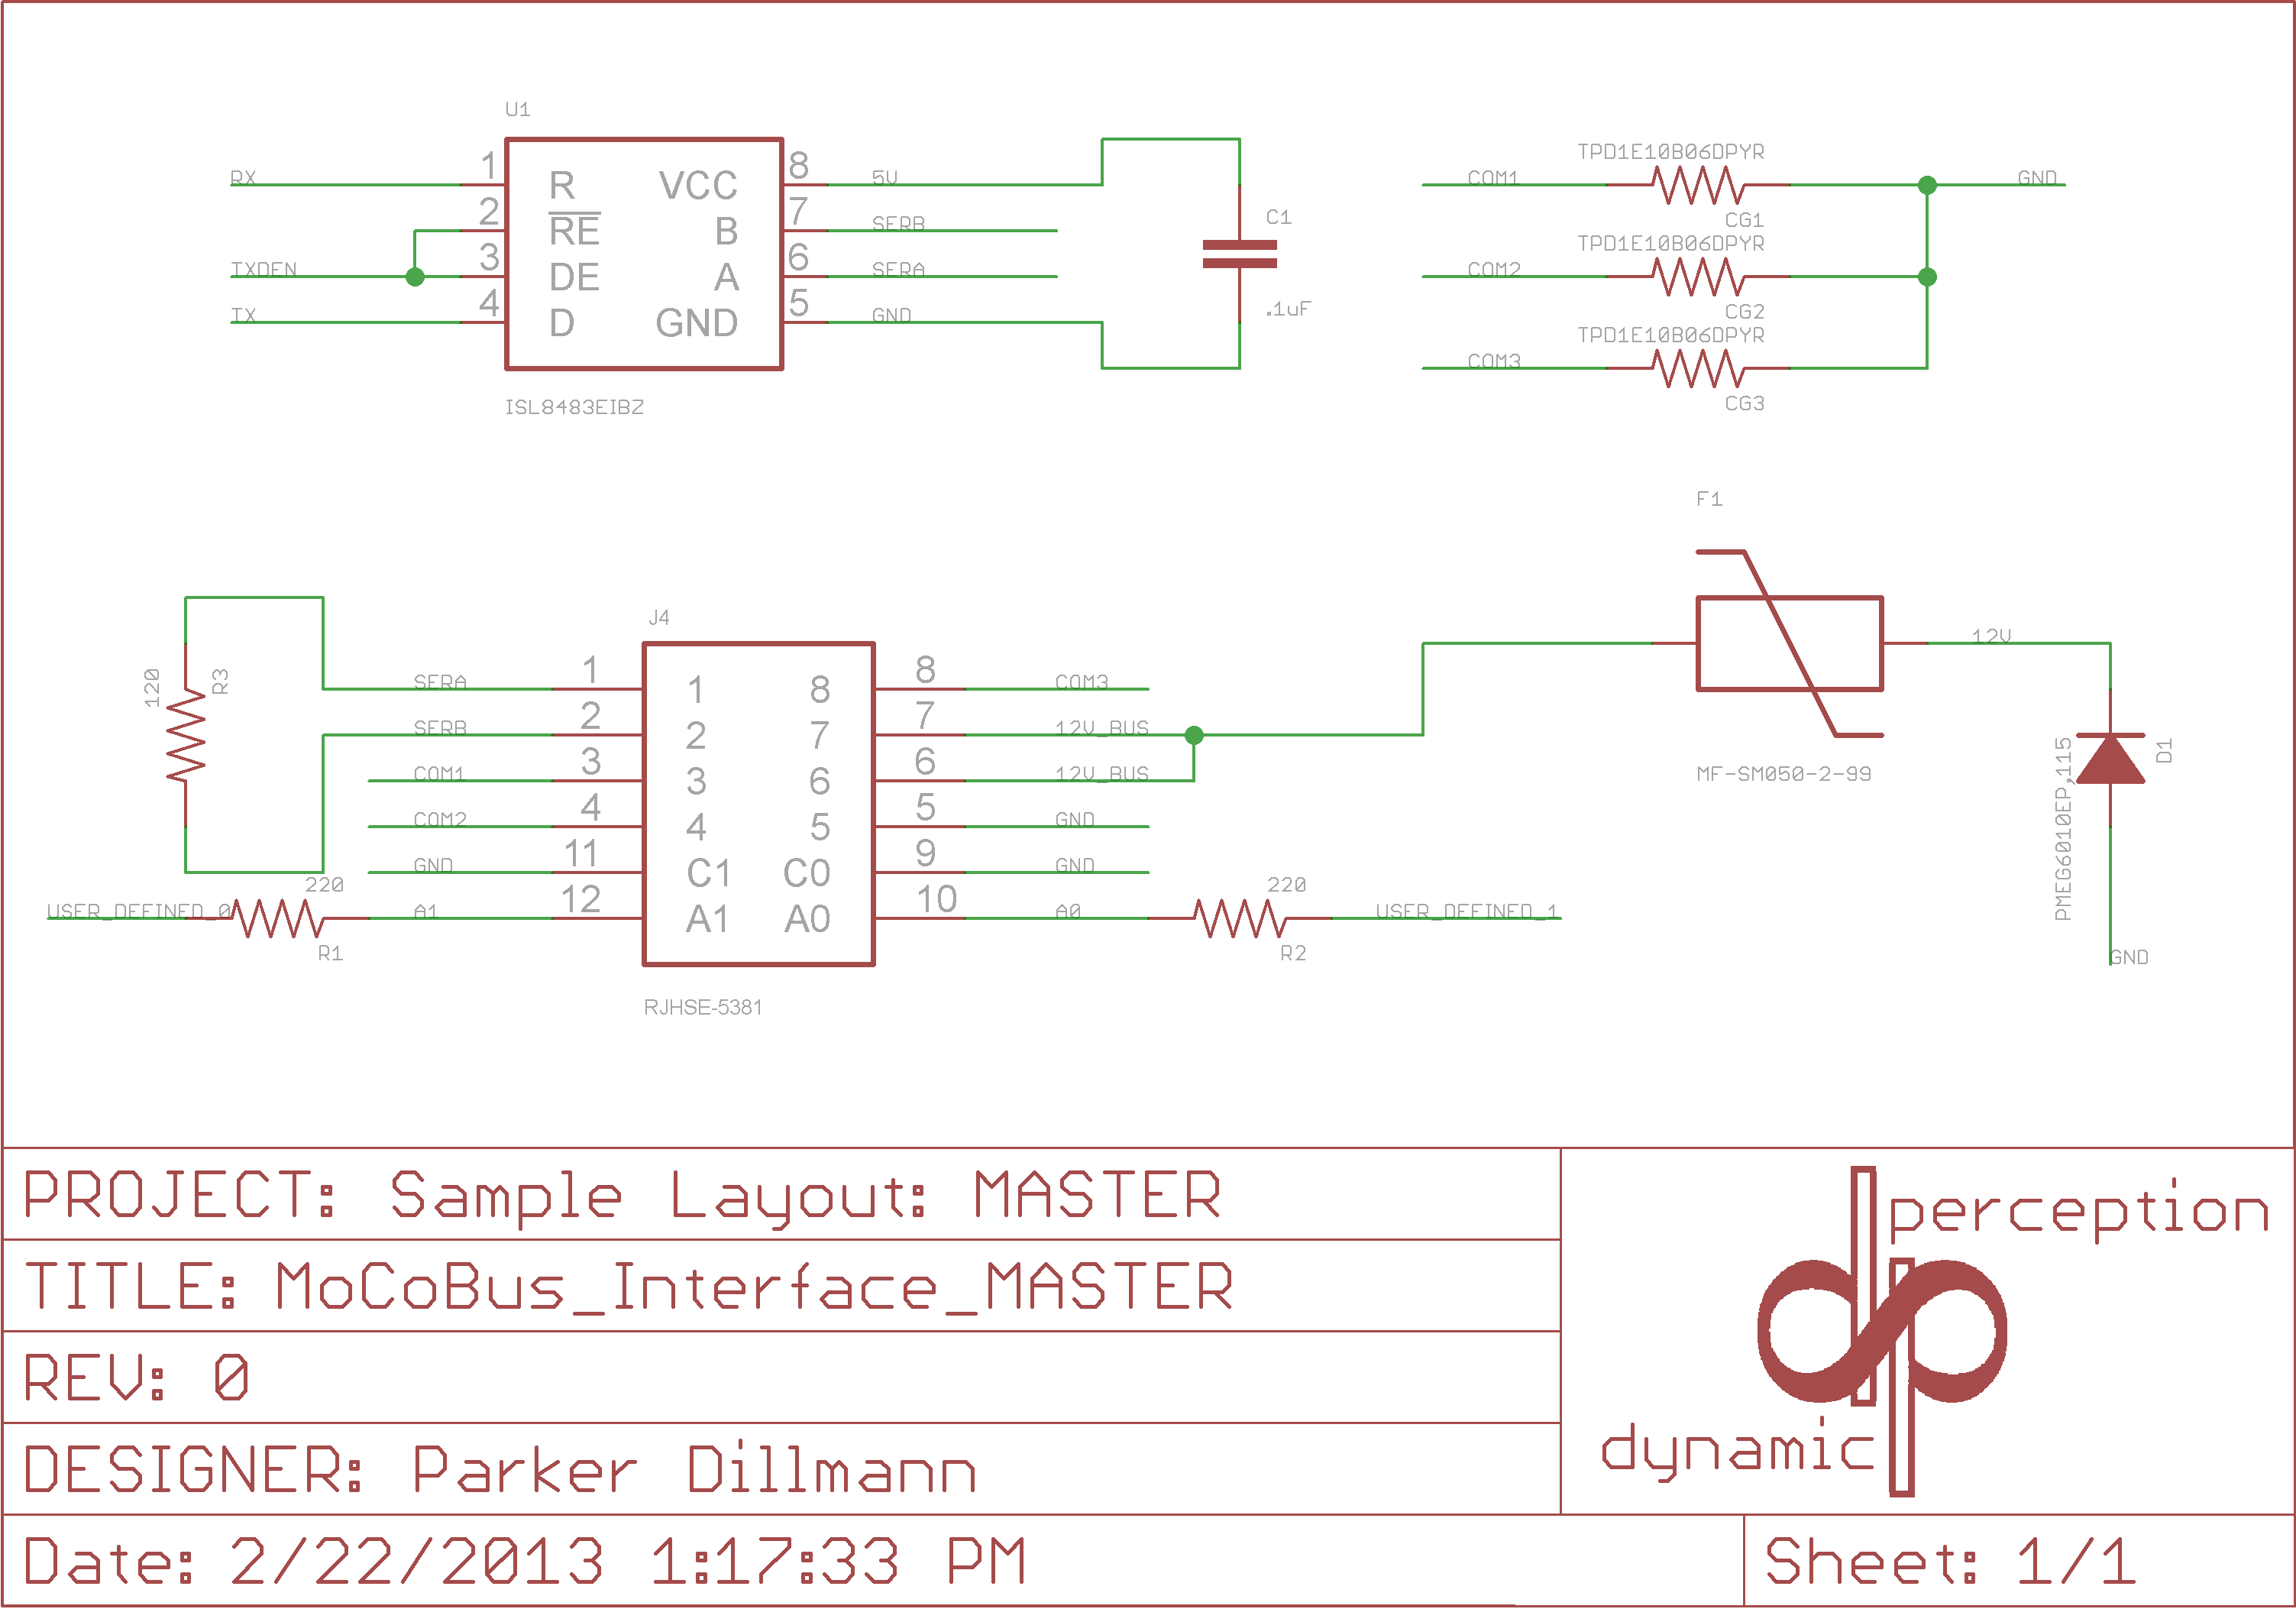 Mocobus Interconnects Dynamic Perception Rs485 4 Wiring Diagram To Aid In System Development The Following Reference Design Is Provided For A Master Device Showing Esd Protection Termination And